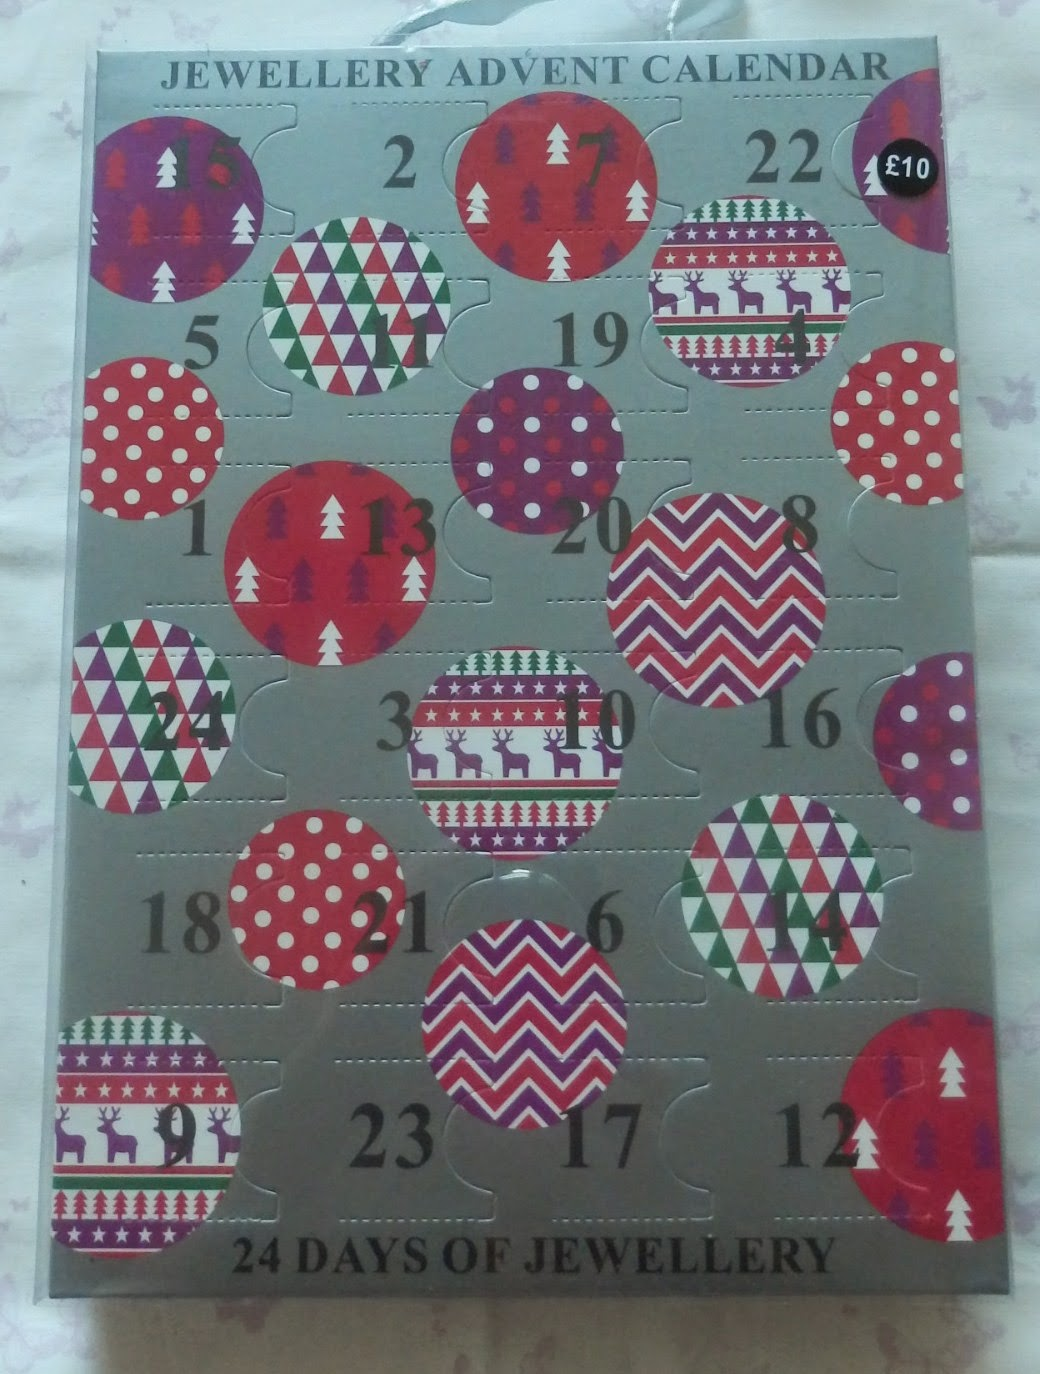 Primark Jewellery Advent Calendar Giveaway